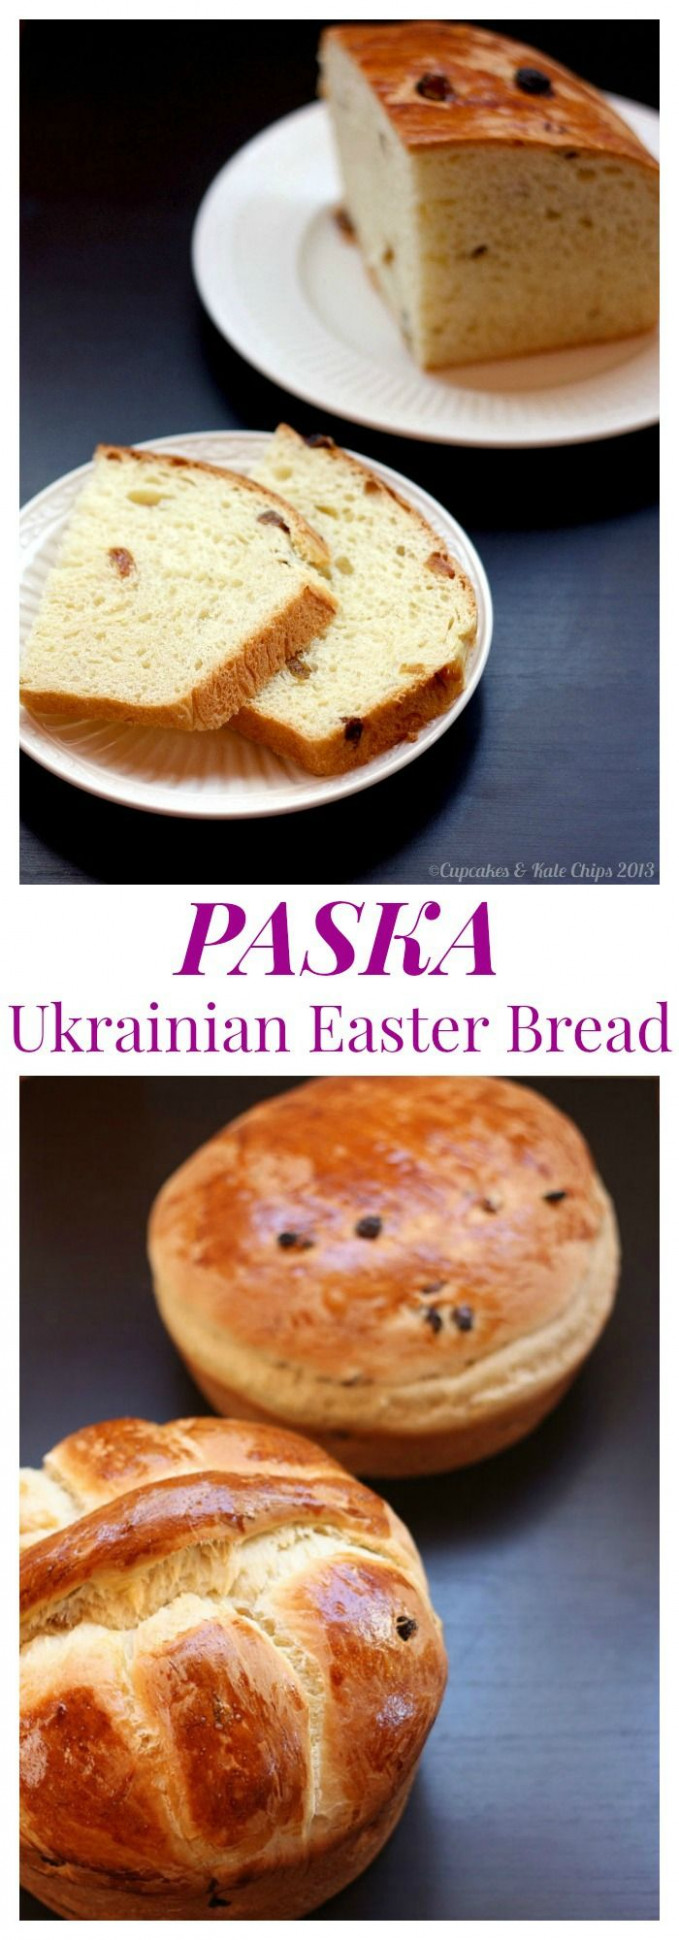 The 25+ best Ukrainian recipes ideas on Pinterest ..